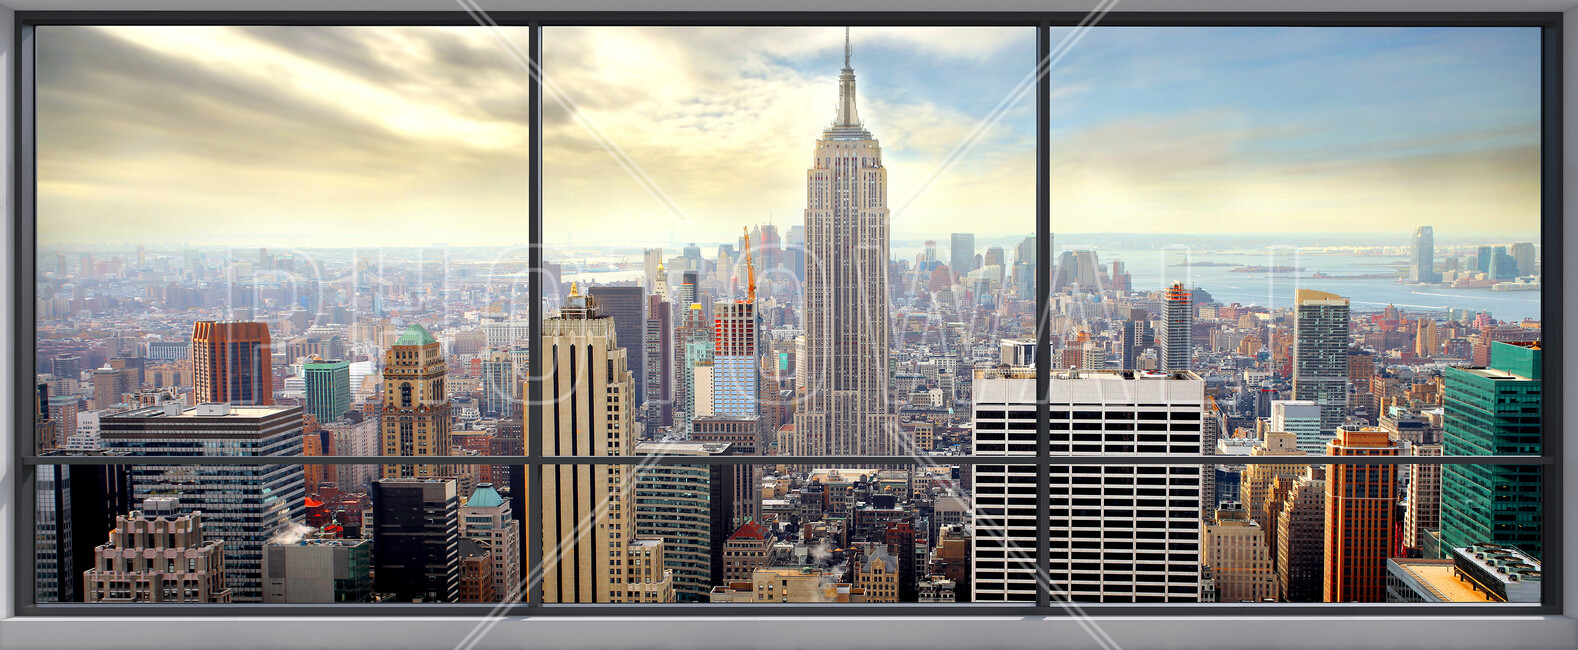 Penthouse Window View Wall Mural Amp Photo Wallpaper